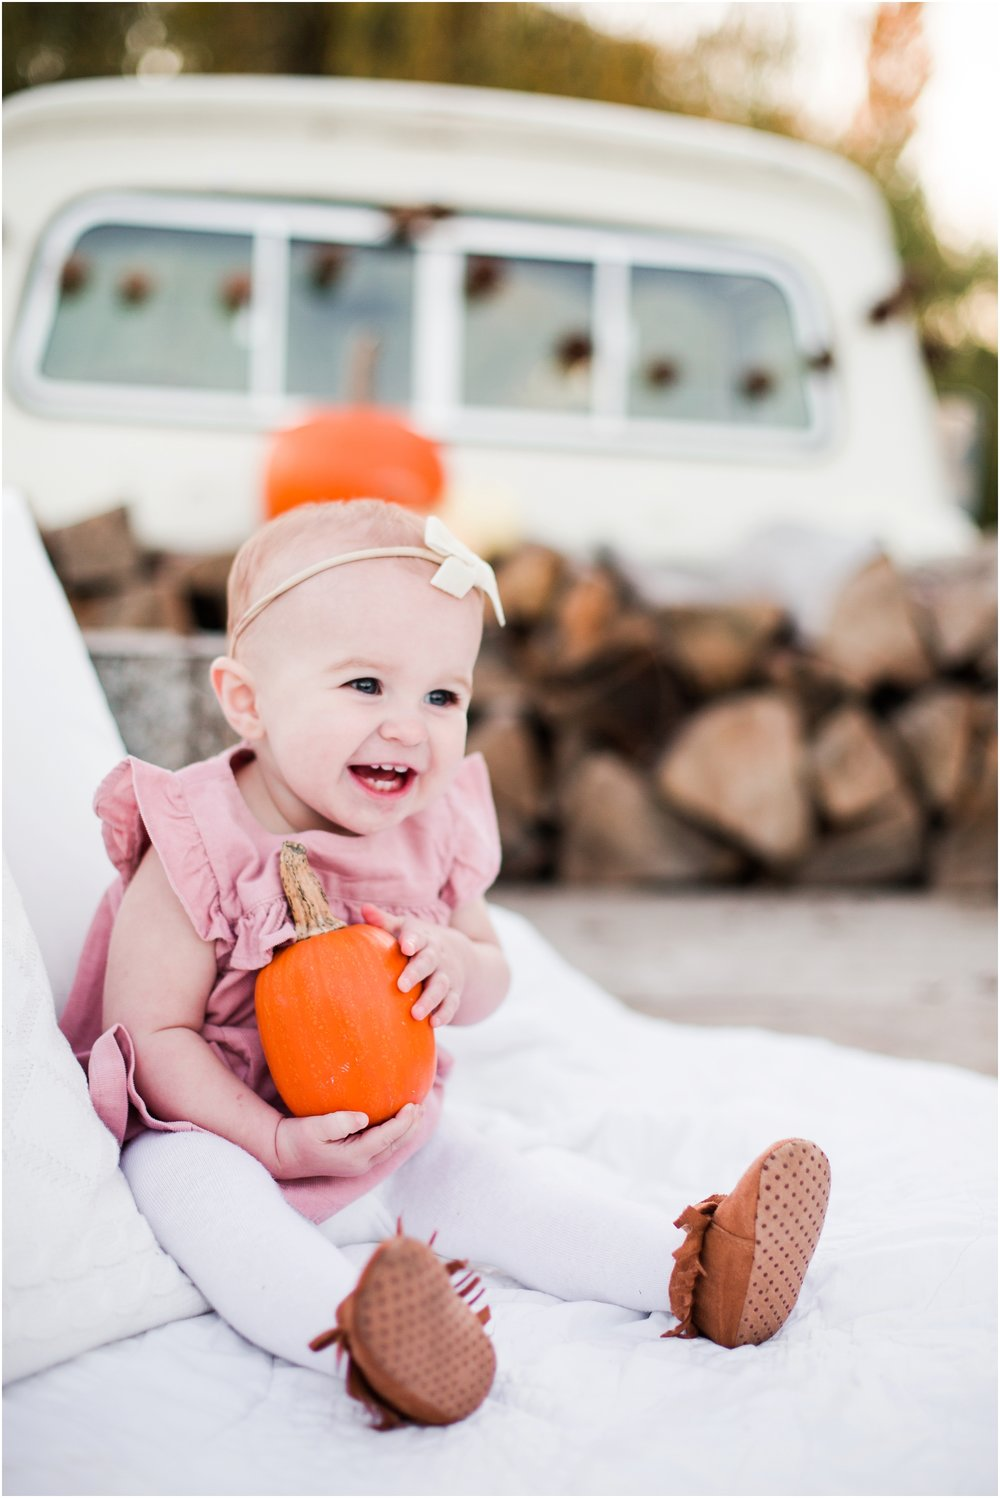 One Year old portriats by Briana Calderon Photography based in the Greater Seattle & Tacoma, WA_0965.jpg